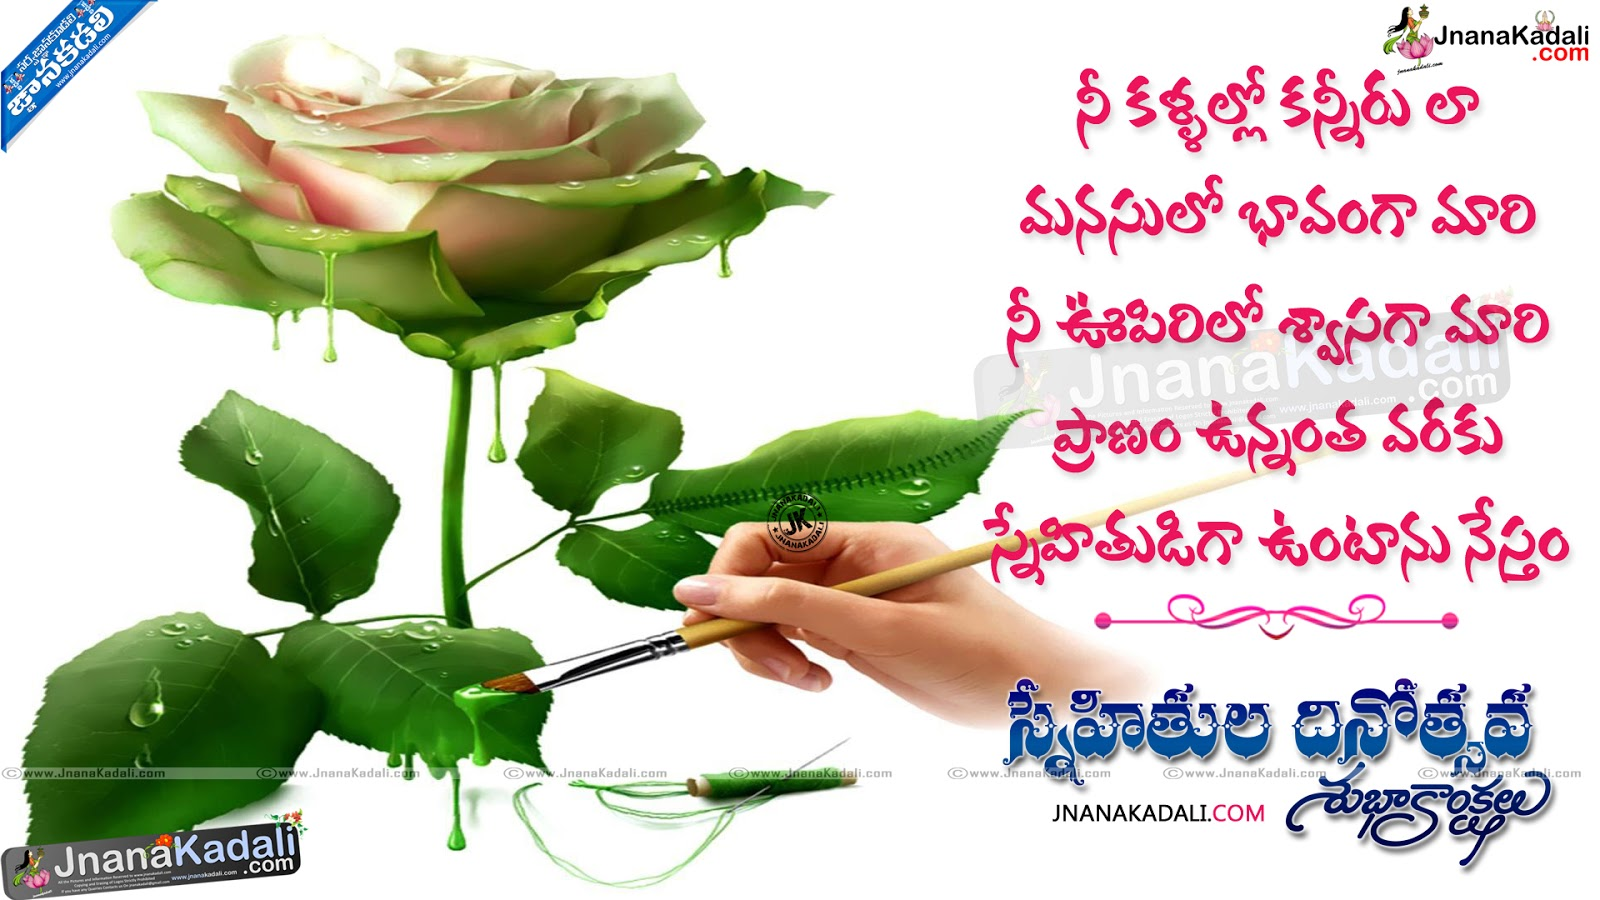 Nice Quotes About Friendship Friendship Day Quotes Backgrounds Wallpapers With Beautiful Telugu